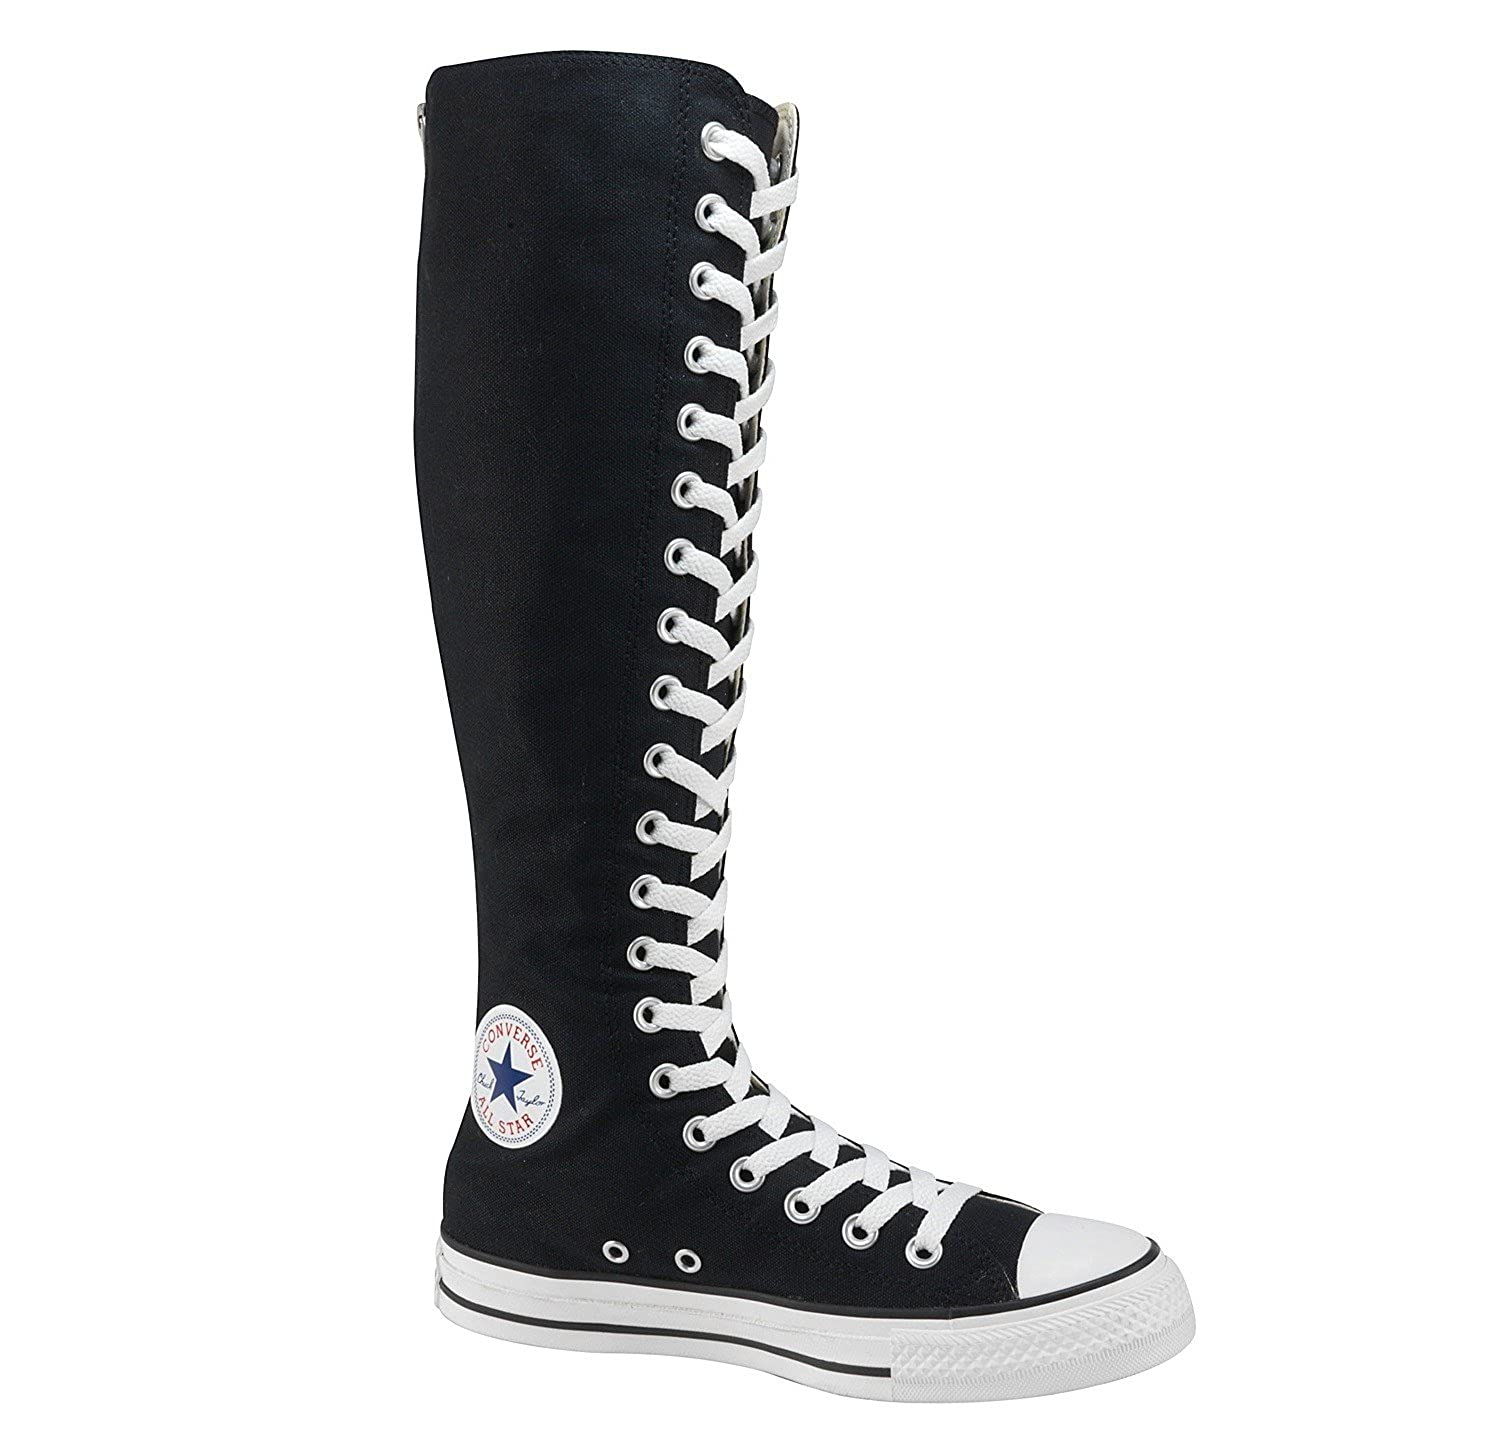 35483b0d285a4d Converse Chuck Taylor All Star XX Hi Black Zipper